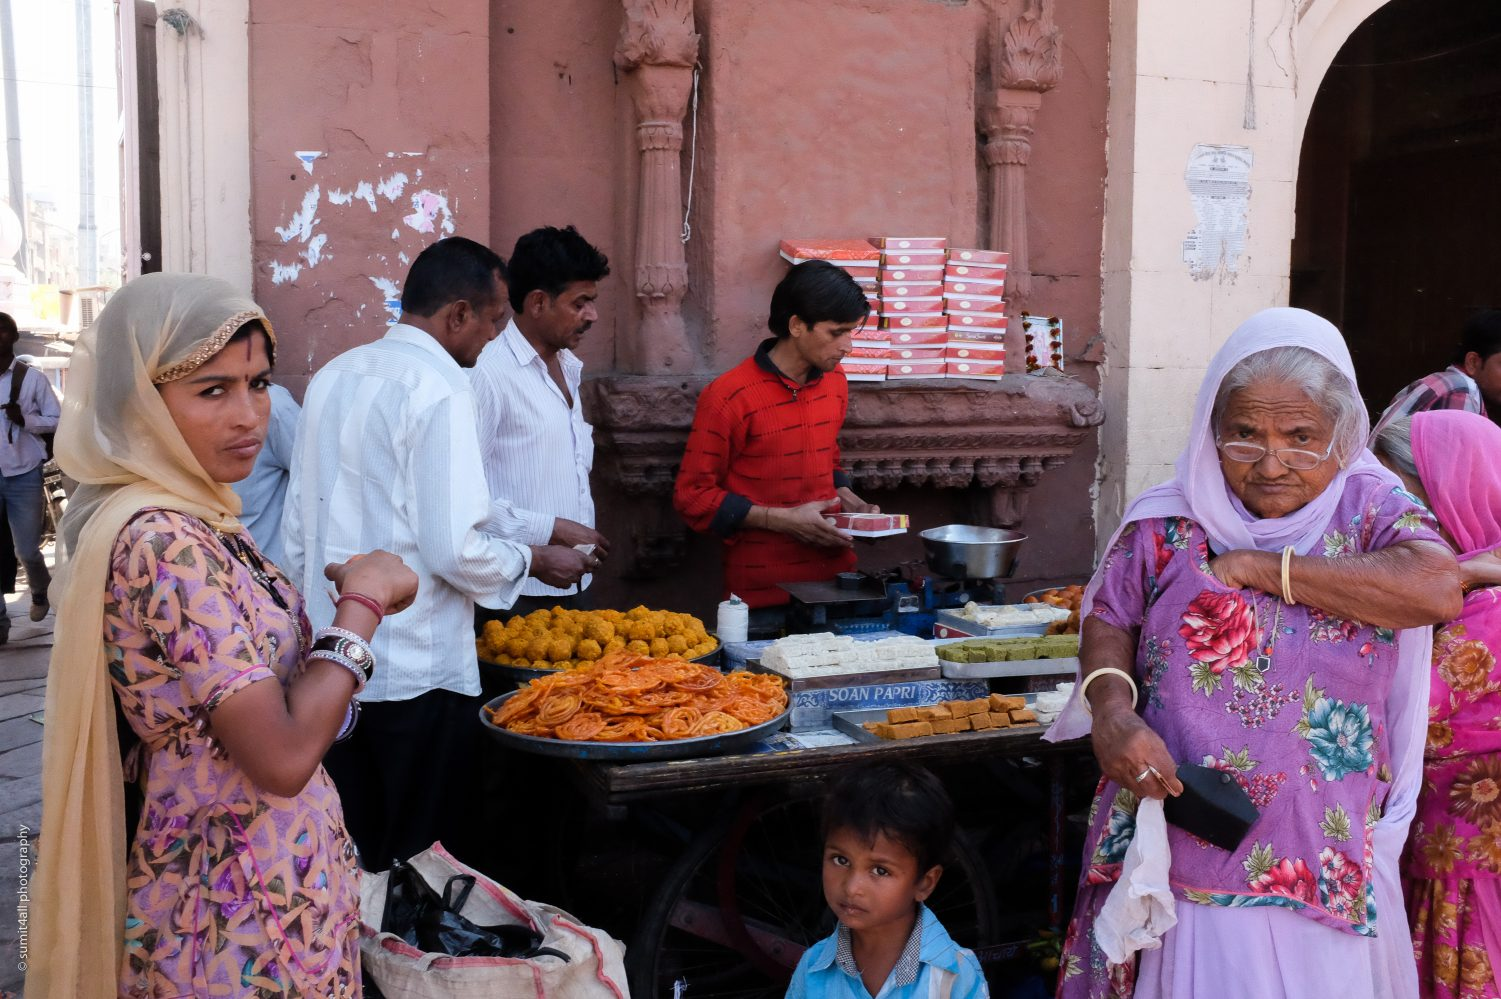 Street Food Stall in Jodhpur, India